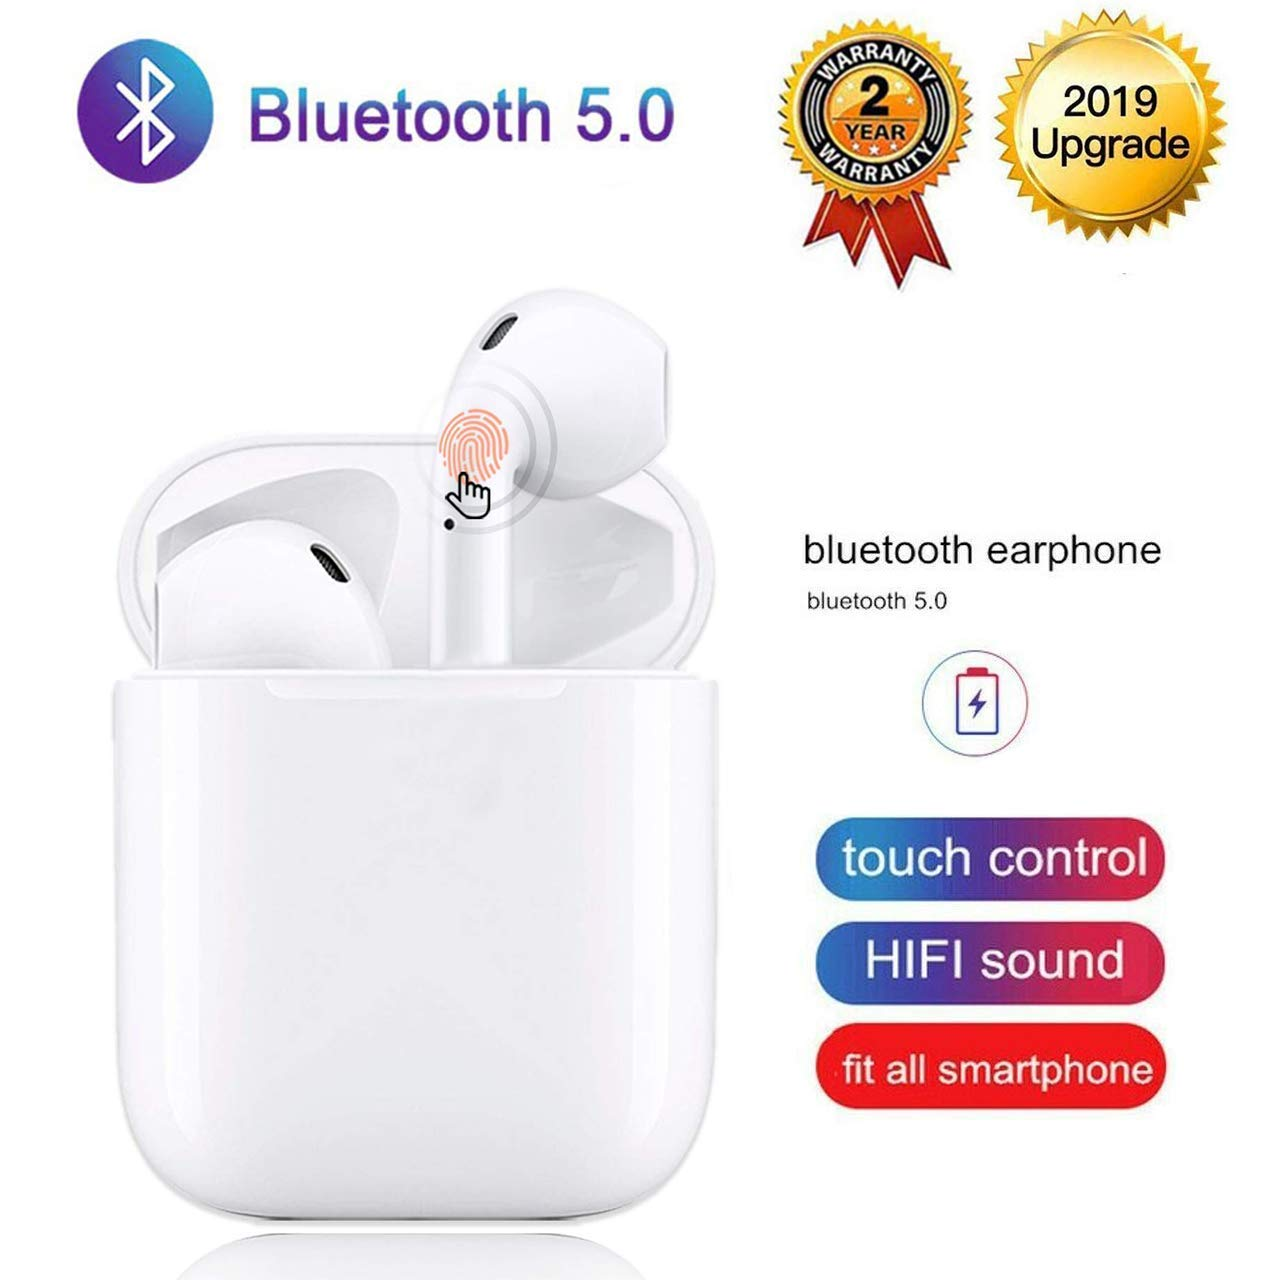 Bluetooth 5.0 Wireless Earbuds Noise Canceling Sports 3D Stereo Headphones with 24Hr Playtime IPX5 Waterproof Pop-ups Auto Pairing Built-in Binaural Mic Headset for Android iPhone Apple Airpods